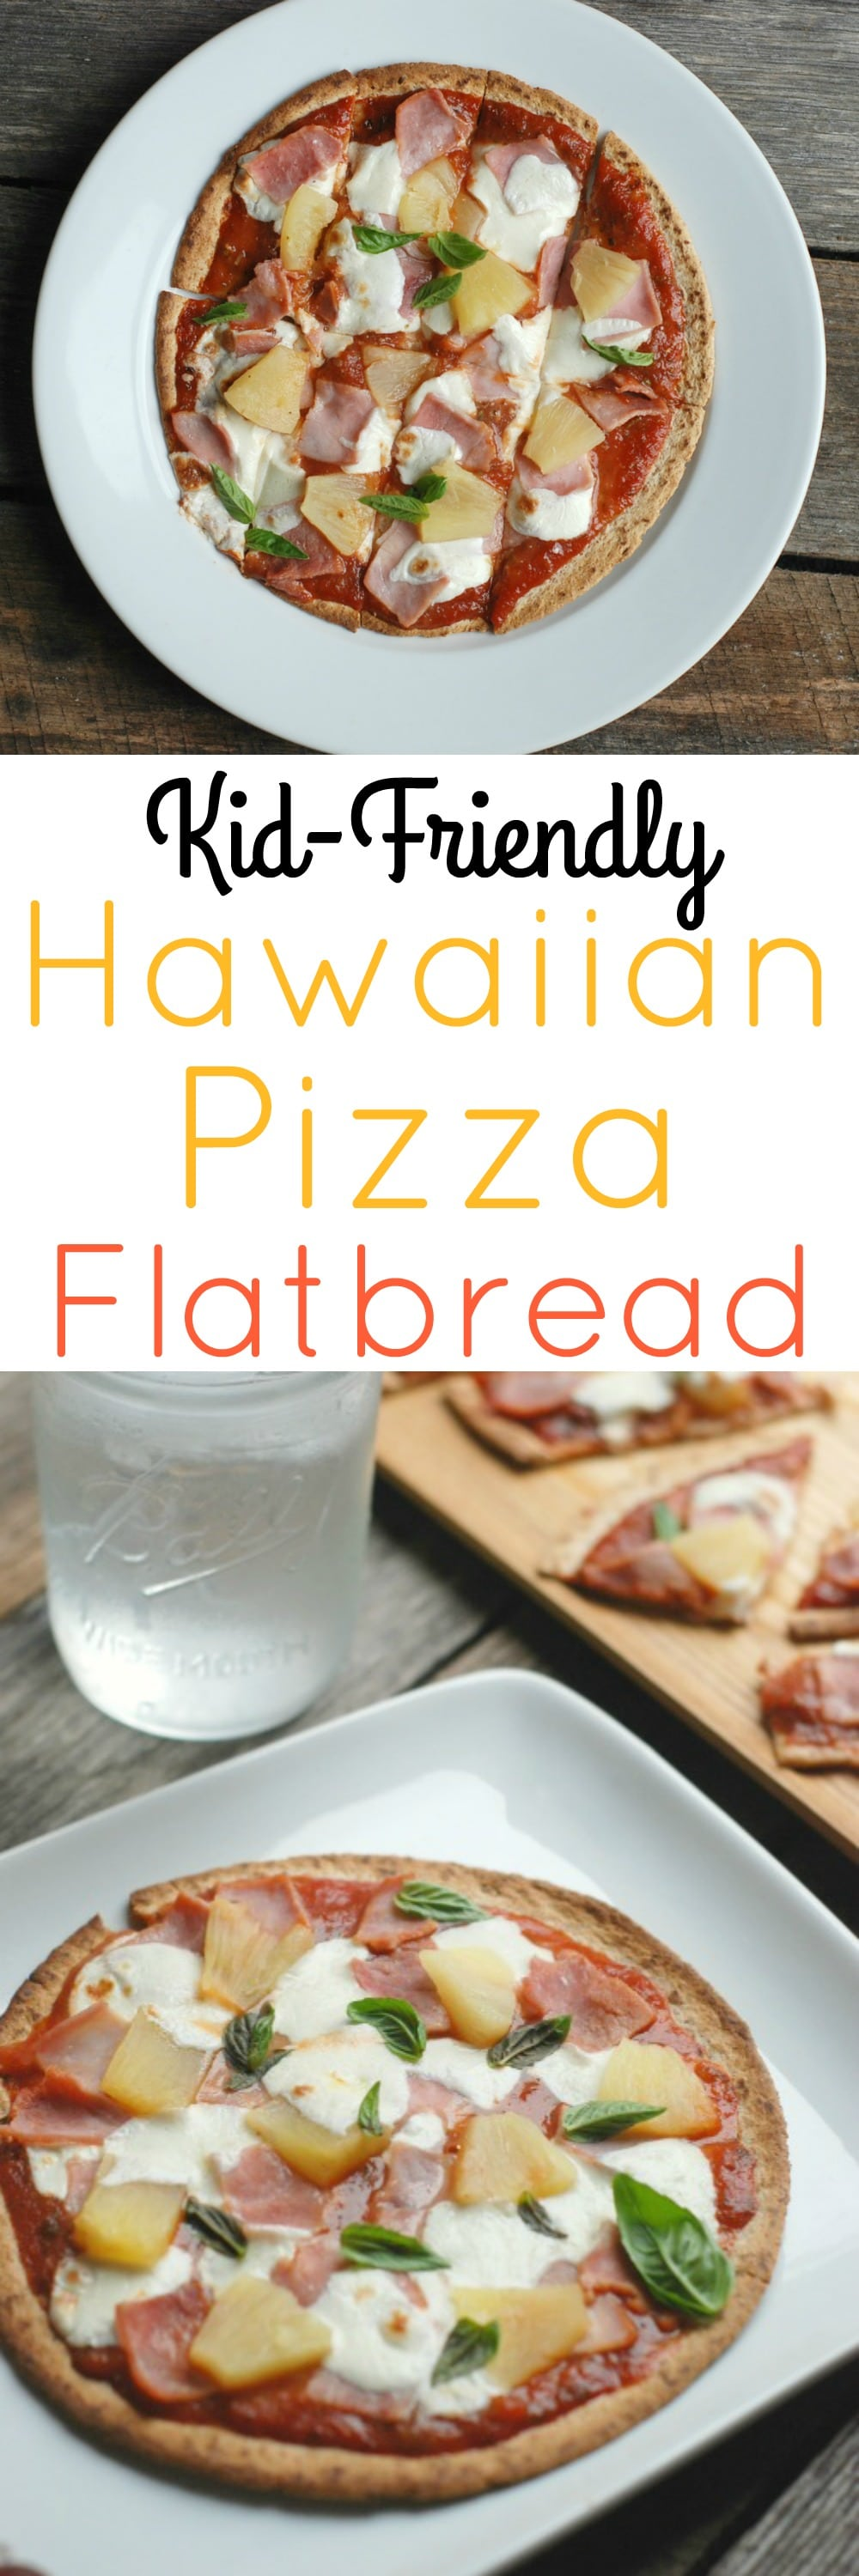 Hawaiian Pizza Flatbread